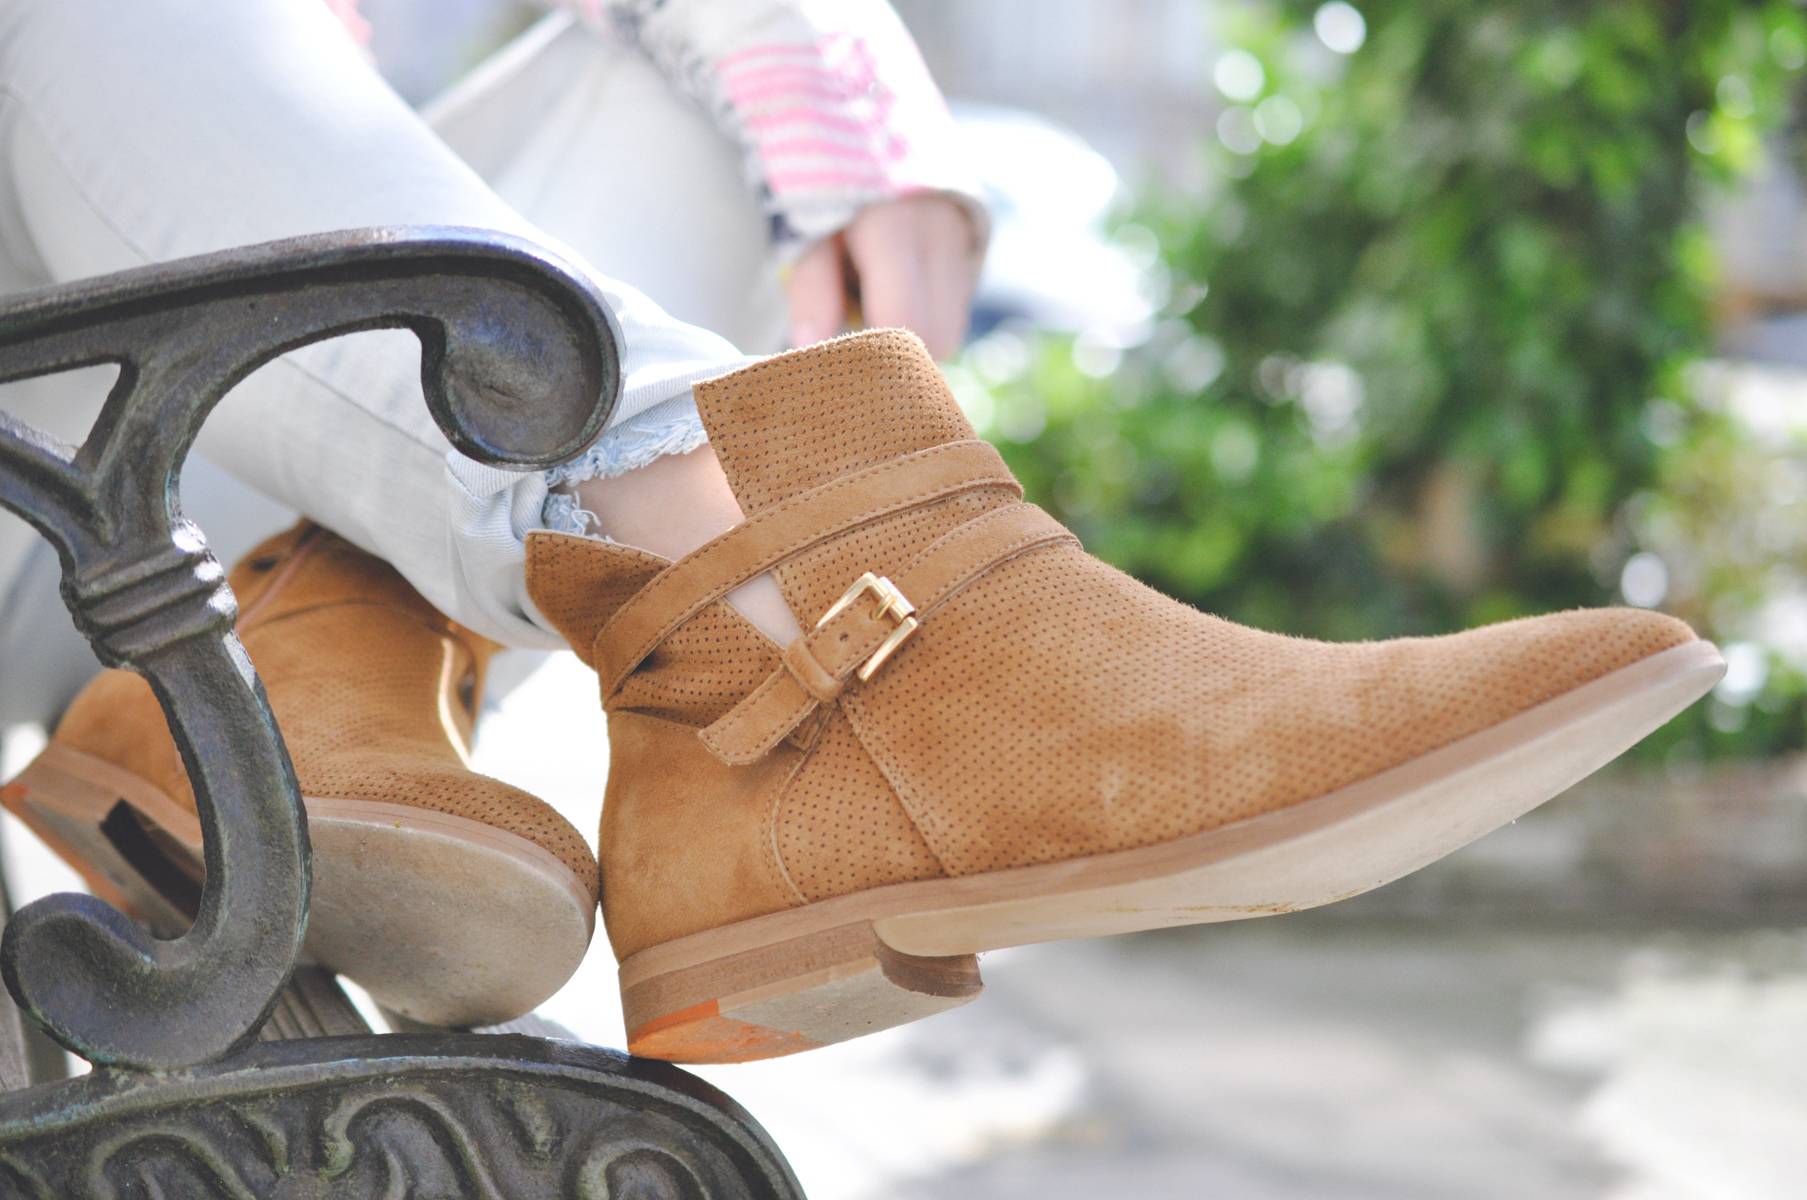 New In: <br/>Minelli Boots